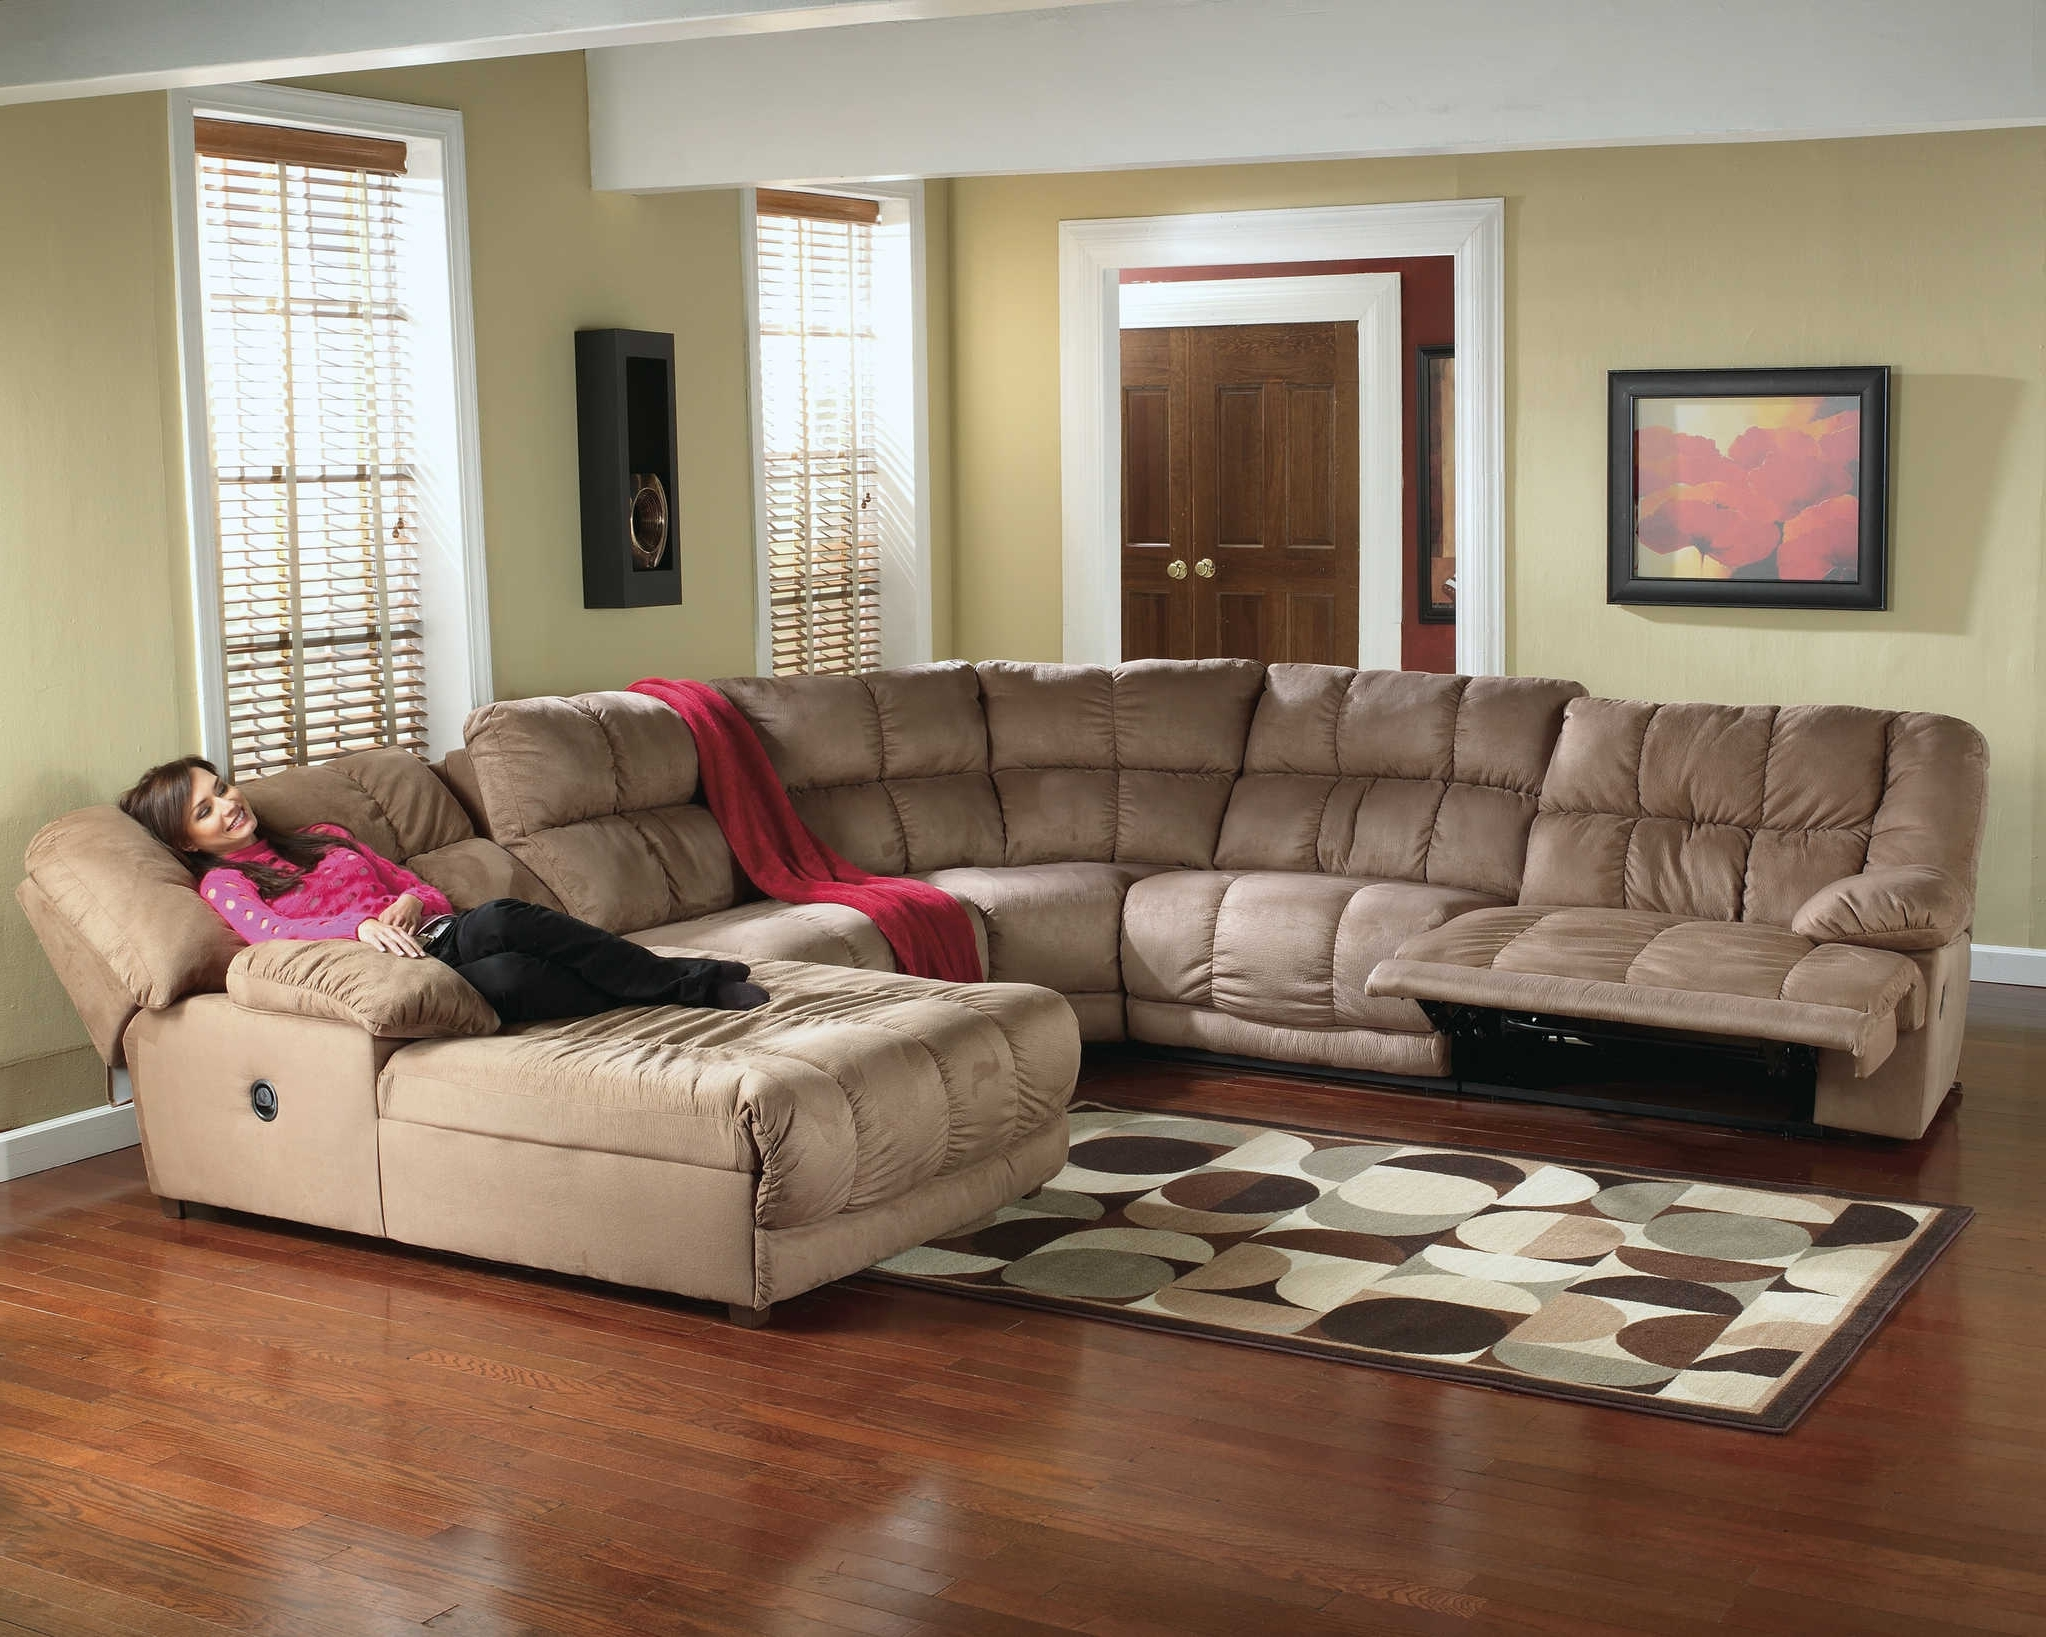 Astonishing Sectional Sofas With Chaise And Recliner 31 About In Recent Las Vegas Sectional Sofas (View 1 of 15)